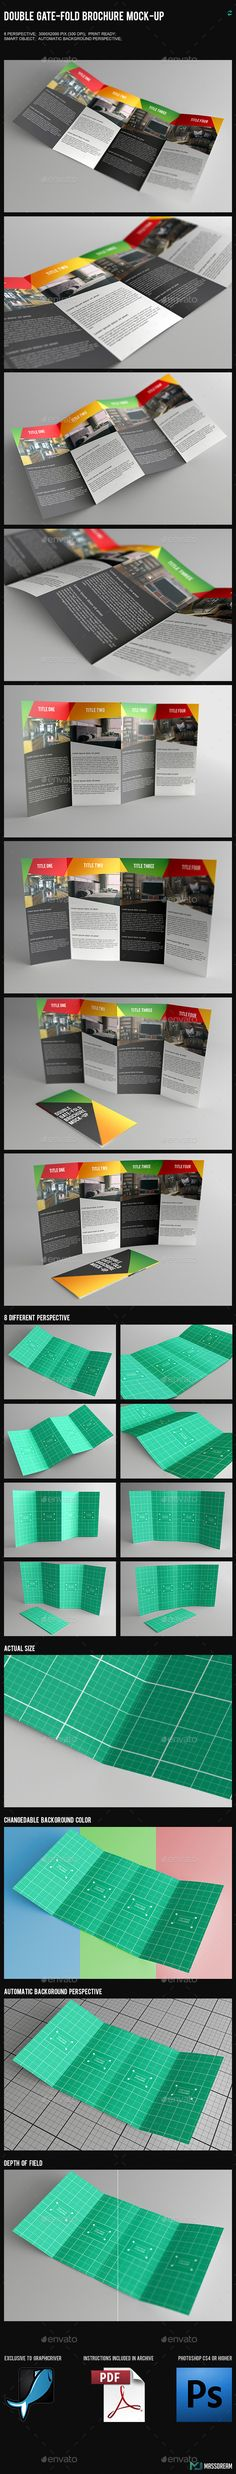 Square Gate Fold Brochure Mockup  Brory Photoshop A Dizajn